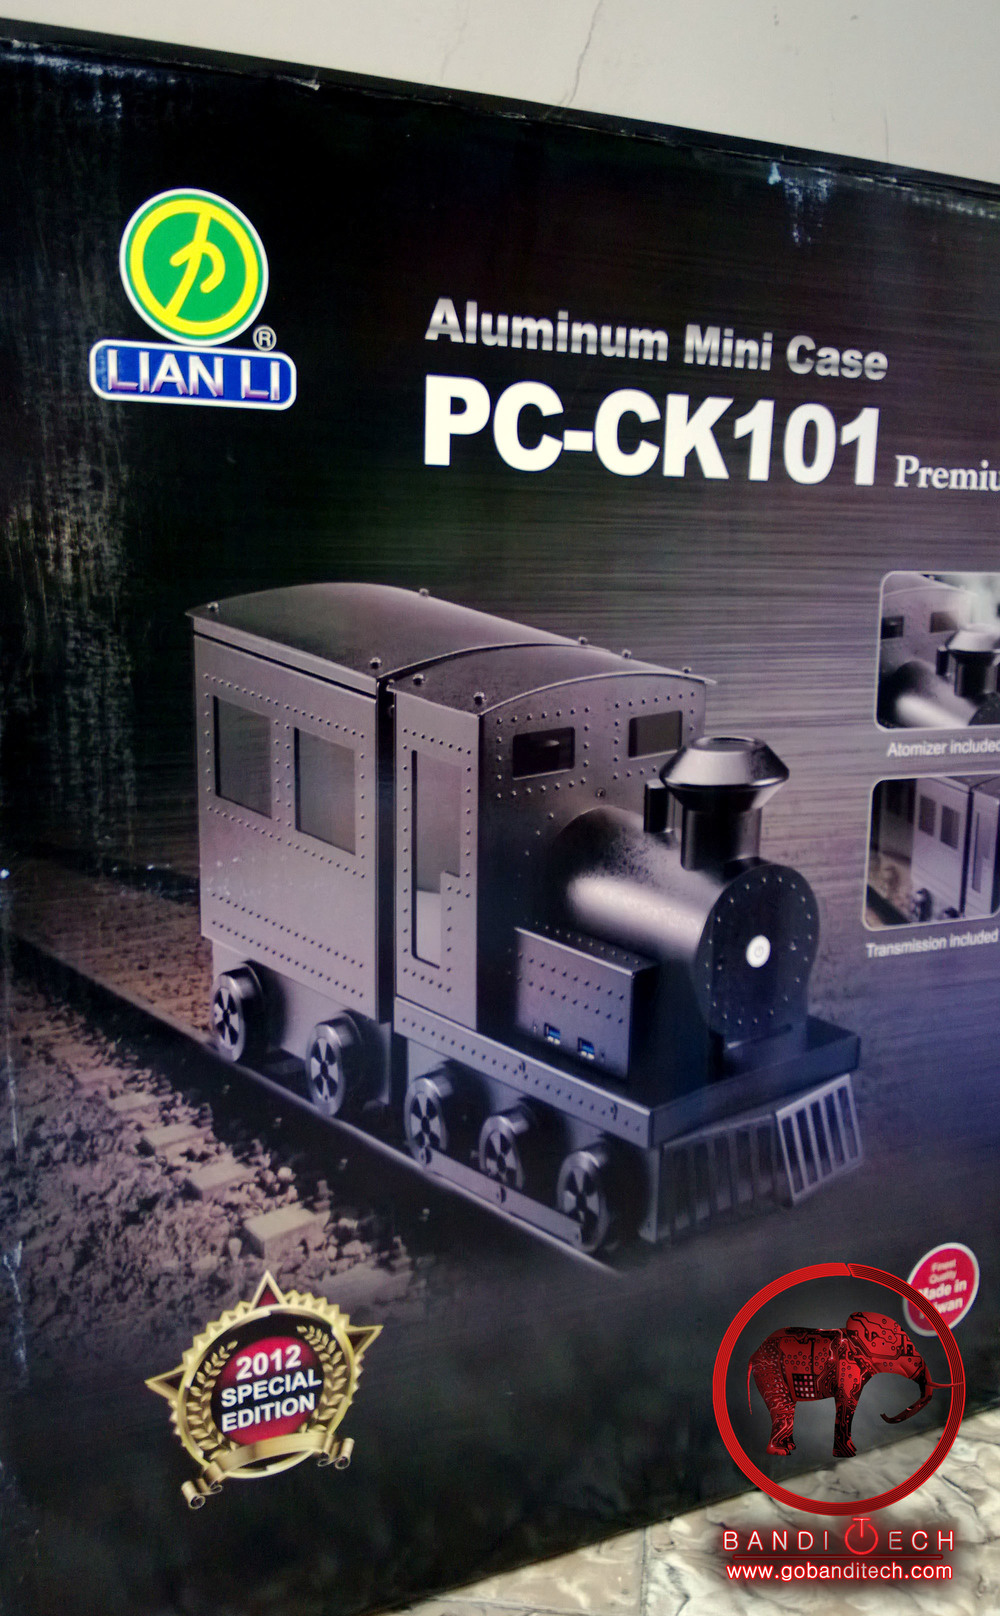 Lian Li PC-CK101 - Bandi Train (4).jpg